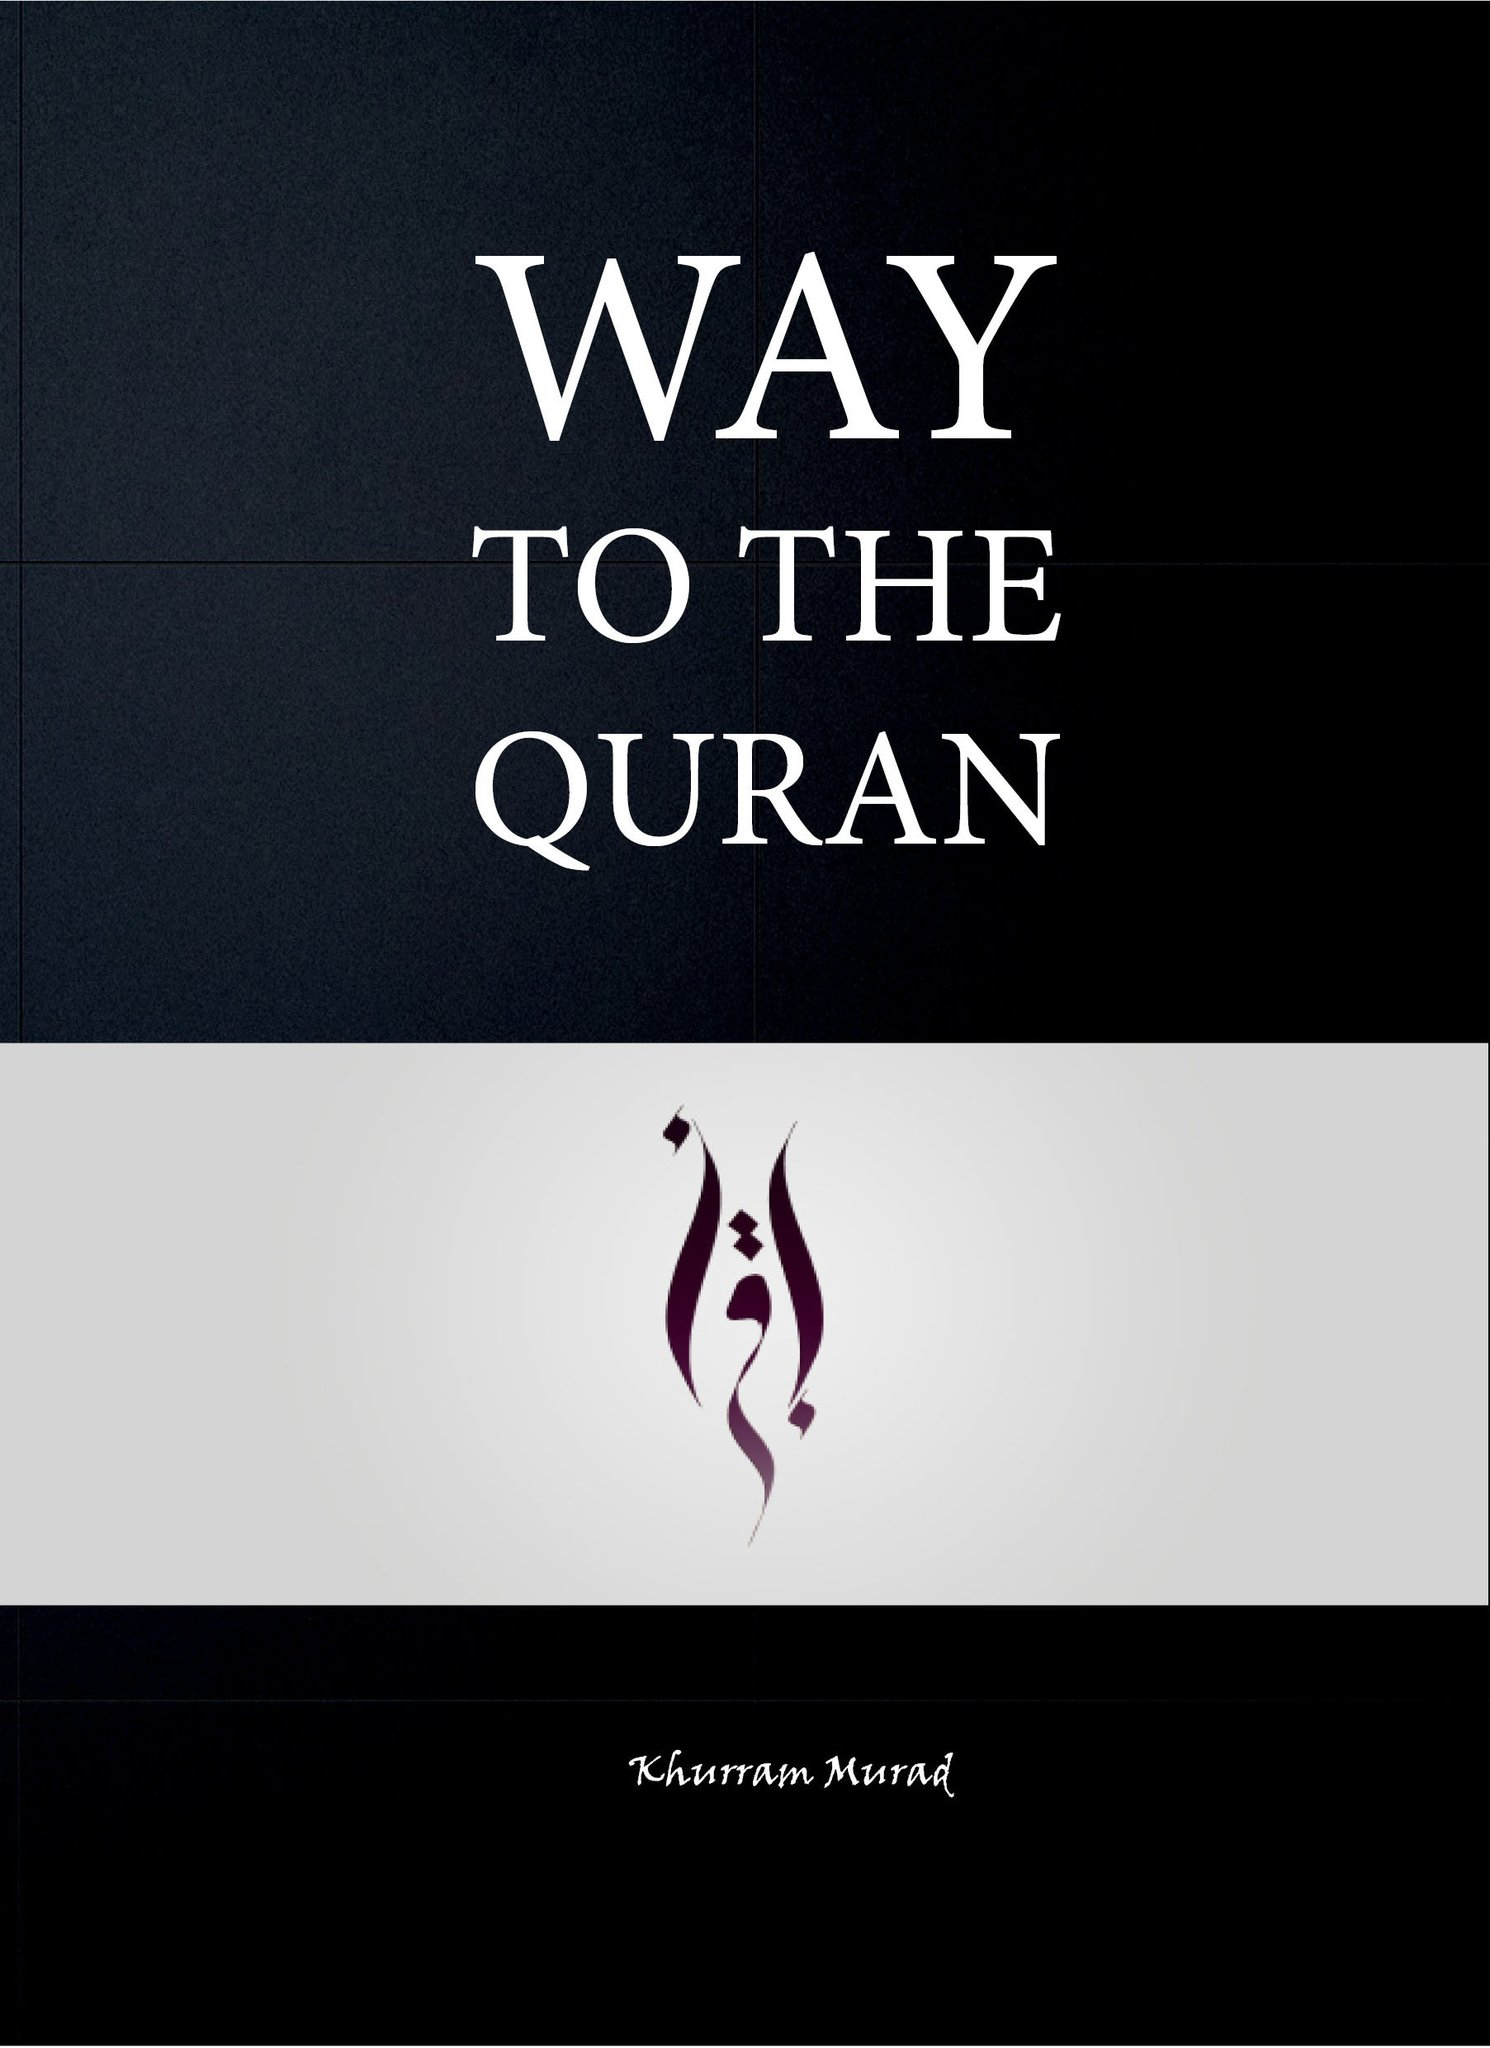 Way to the Quraan- Khurram Murad